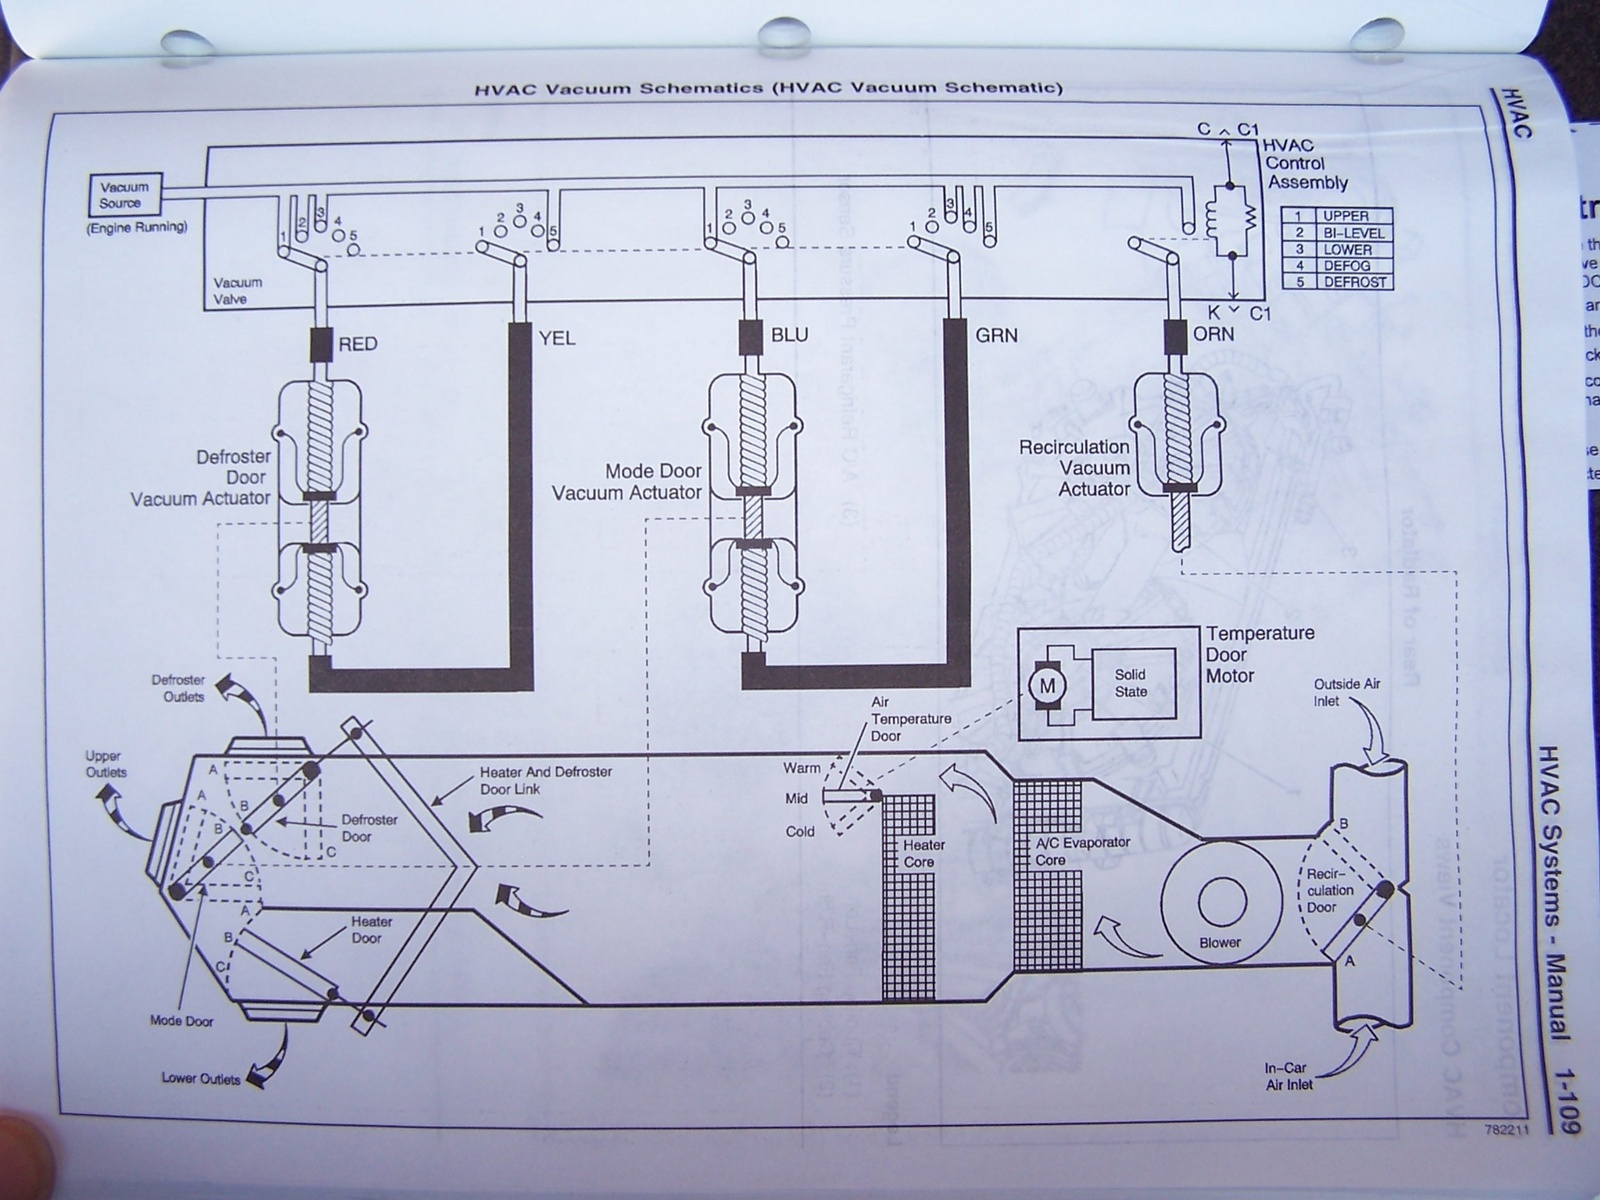 chevy actuator valve wiring diagram wiring schematic diagram mercruiser wiring-diagram valve actuator chevy blazer wiring diagram wiring library eim valve actuators wiring diagrams my heater stopped